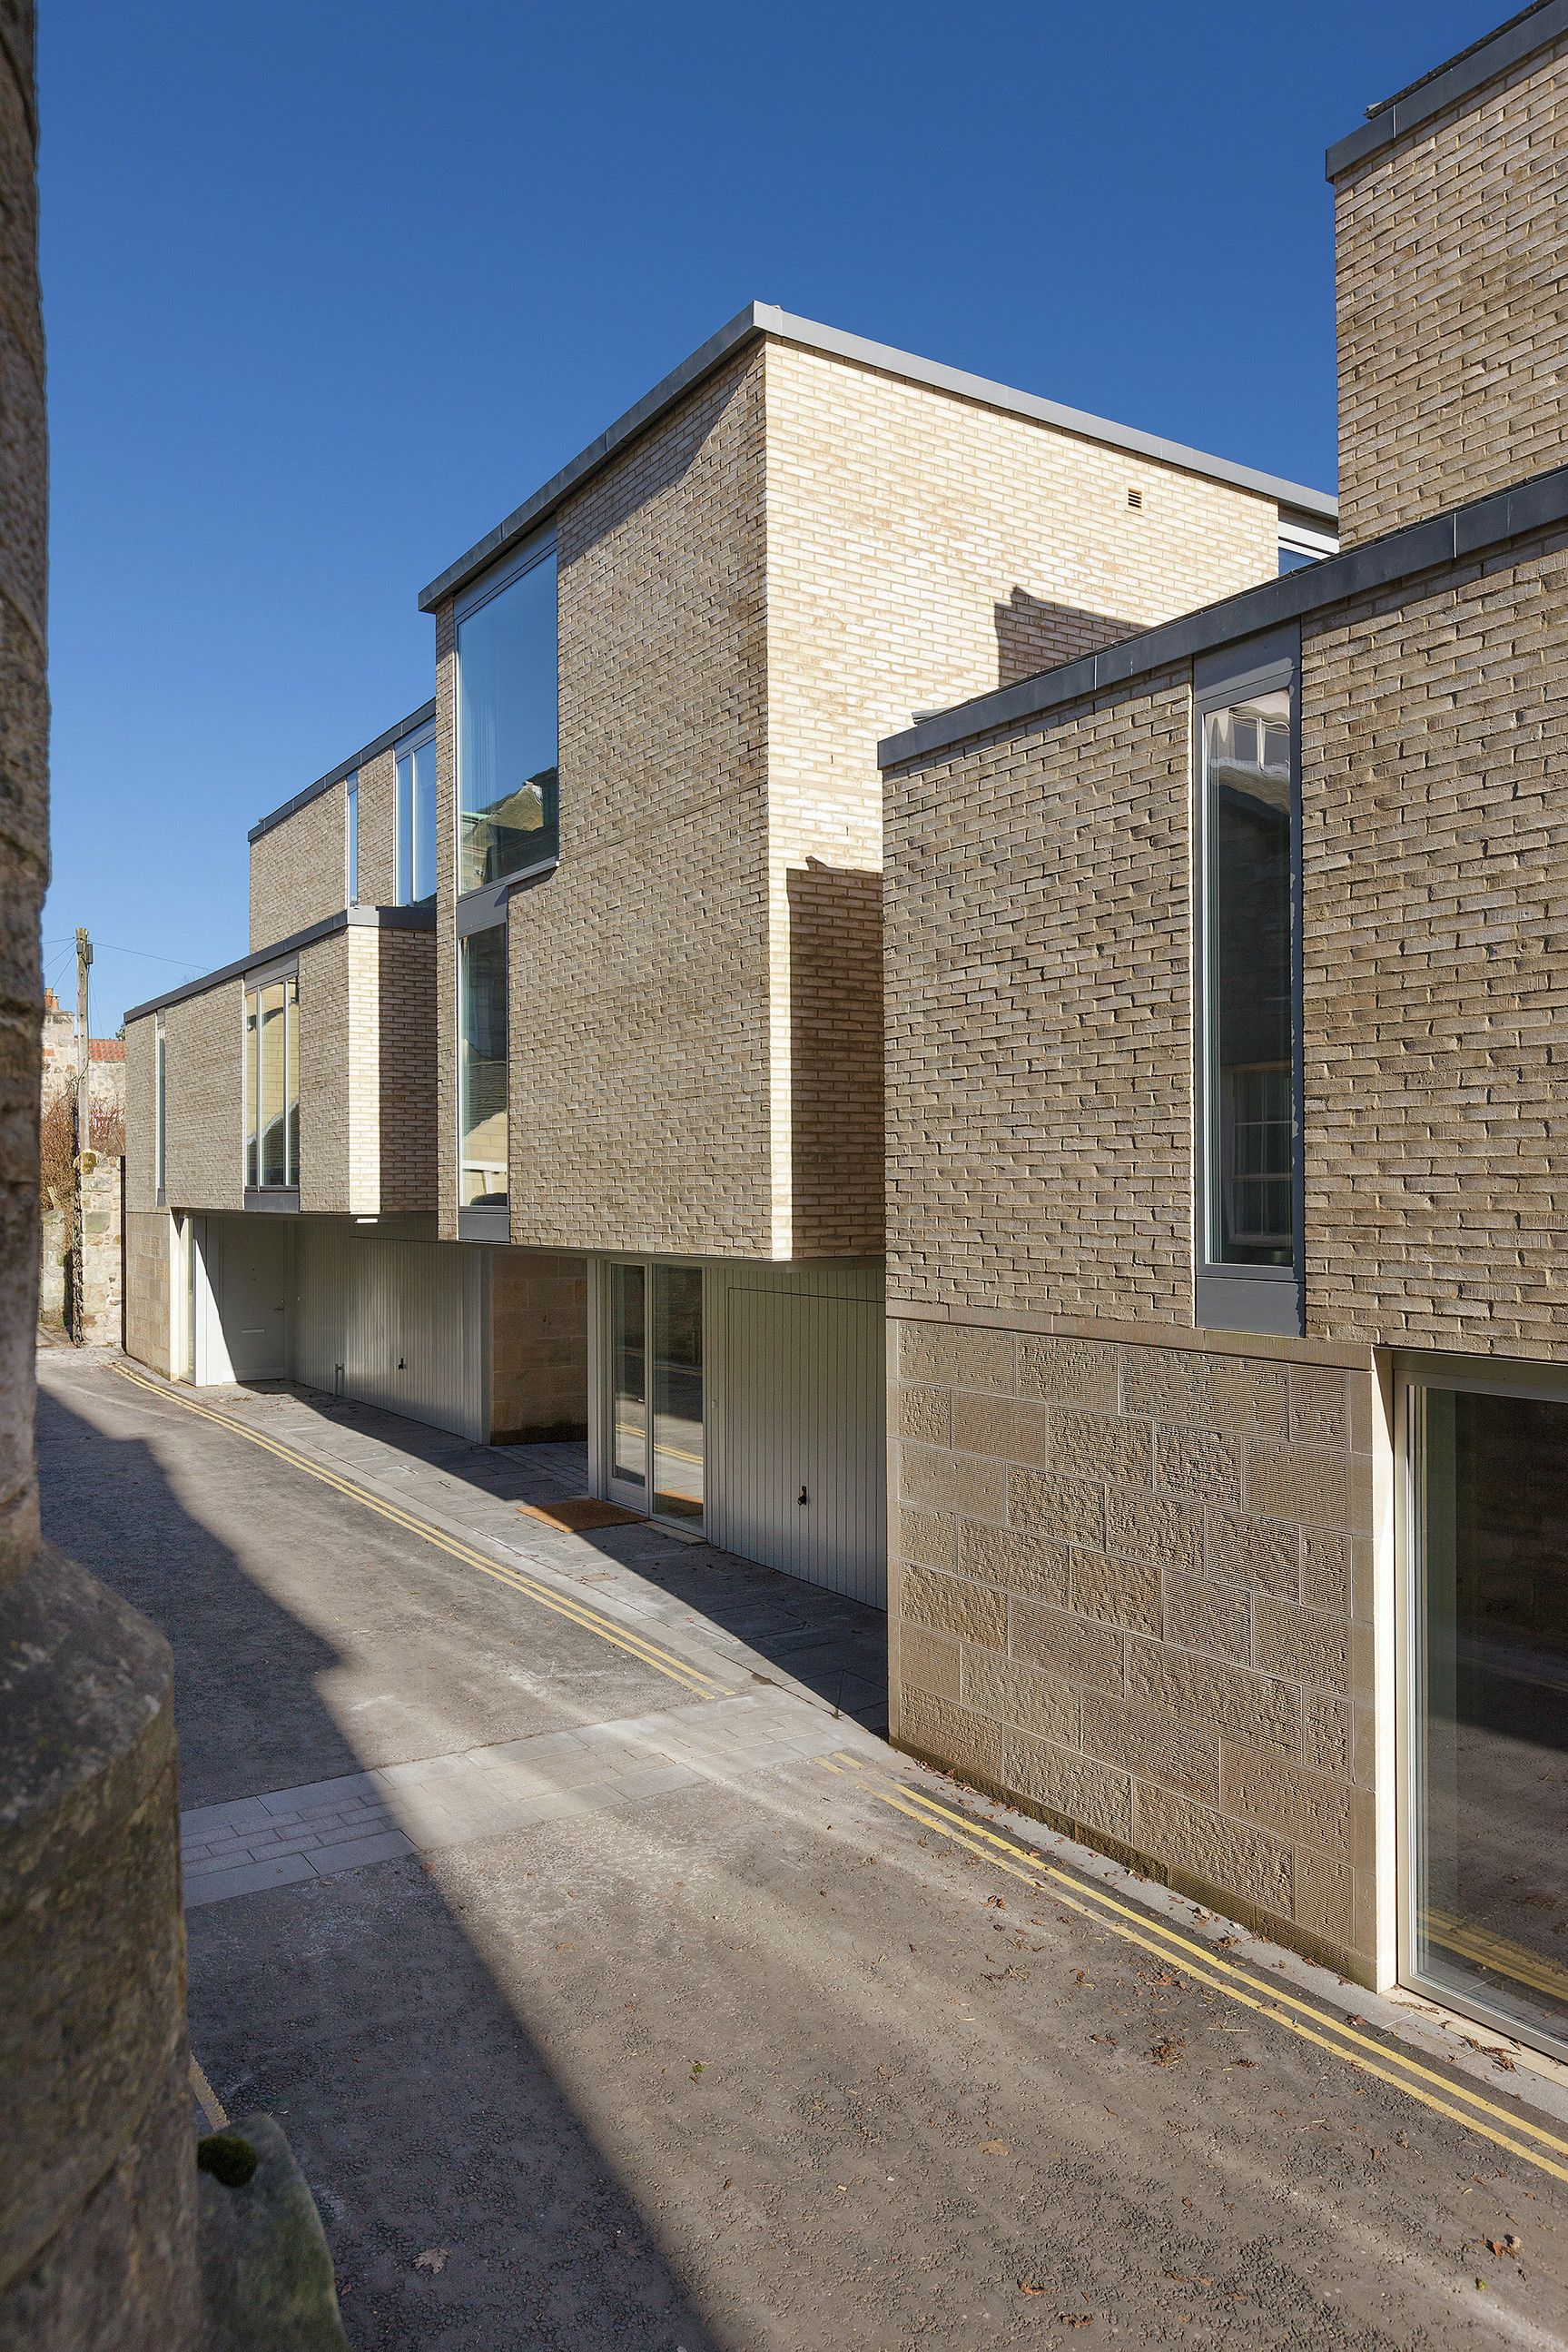 Modern Architecture Scotland sutherland hussey architects' wins award for best building in